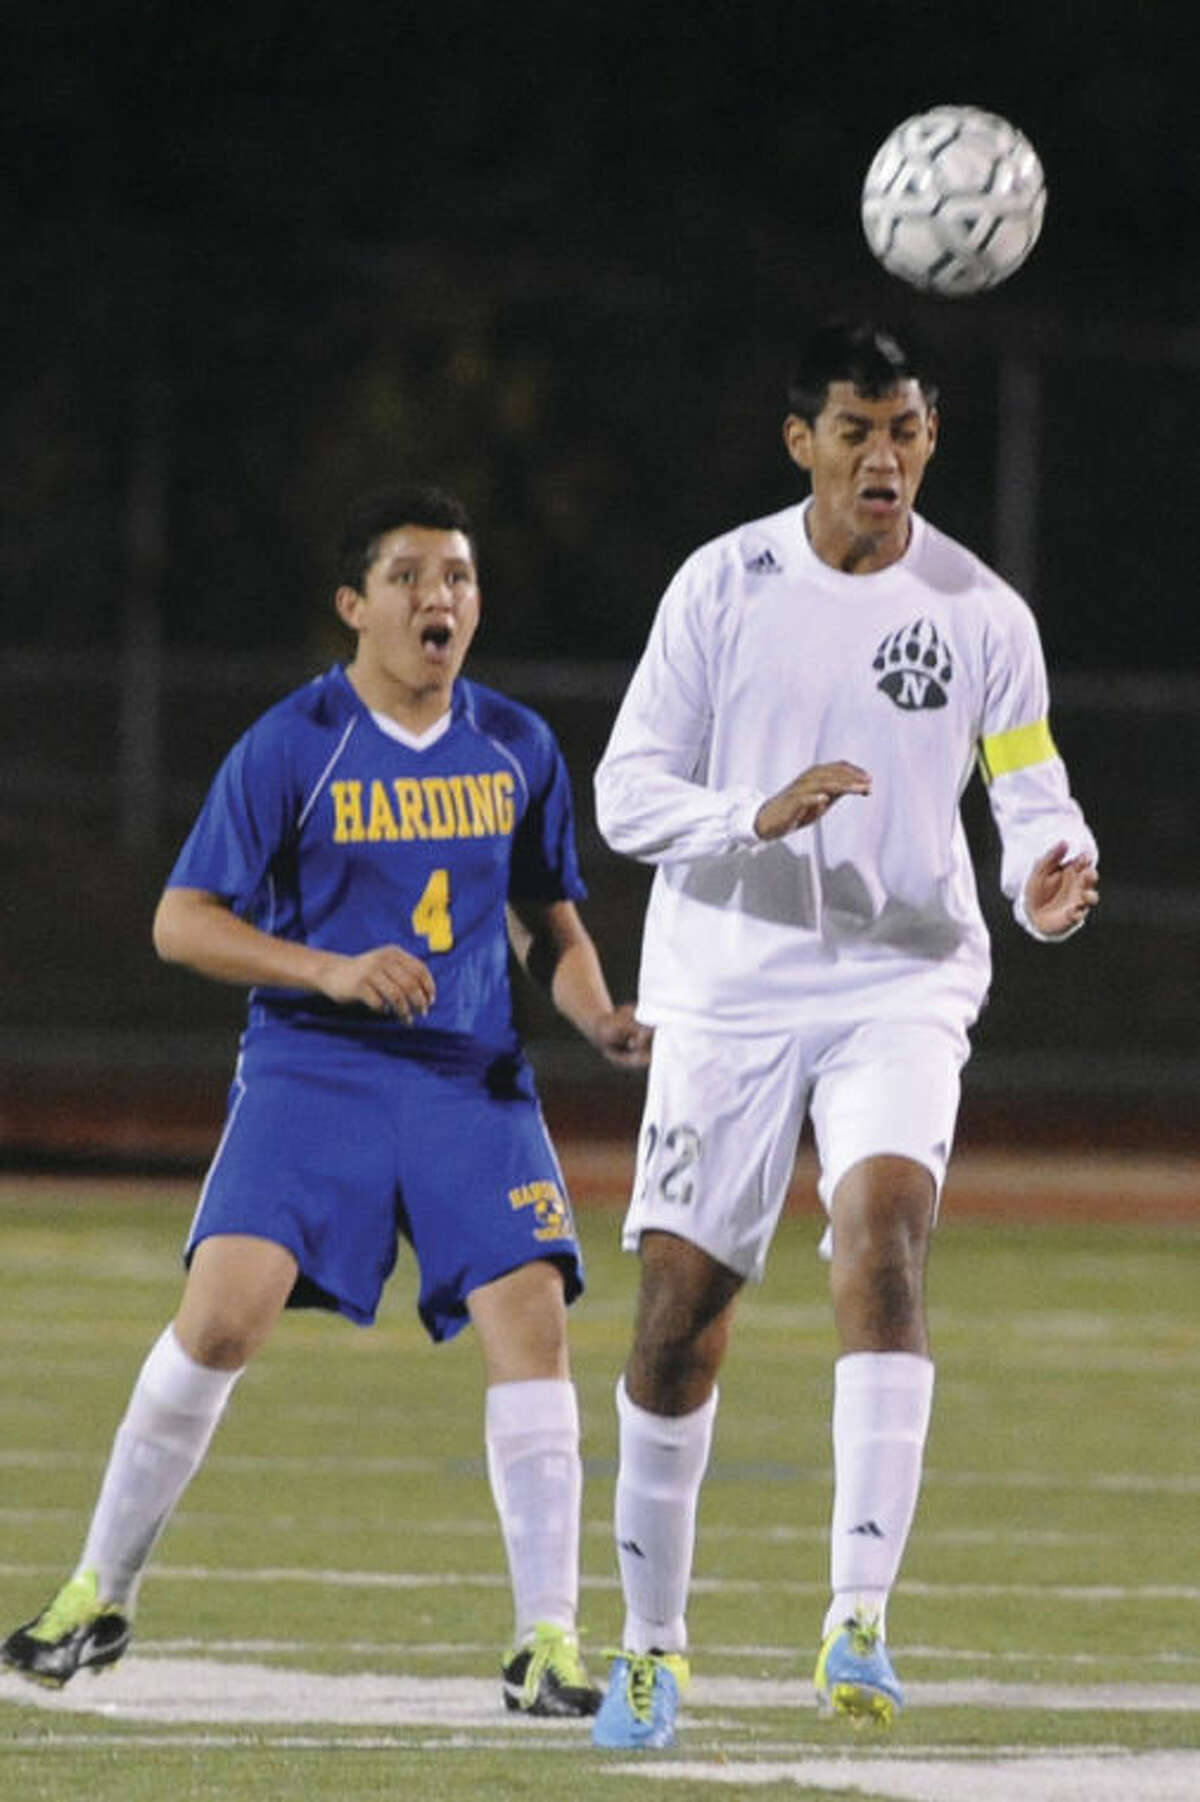 Hour photo/Matthew Vinci Norwalk's Sergio Mandujano, right, heads the ball in front of Kevin Rodriguez of Harding during Tuesday night's contest. The Bears scored three times in the first half and went on to a 4-1 win over the Presidents.